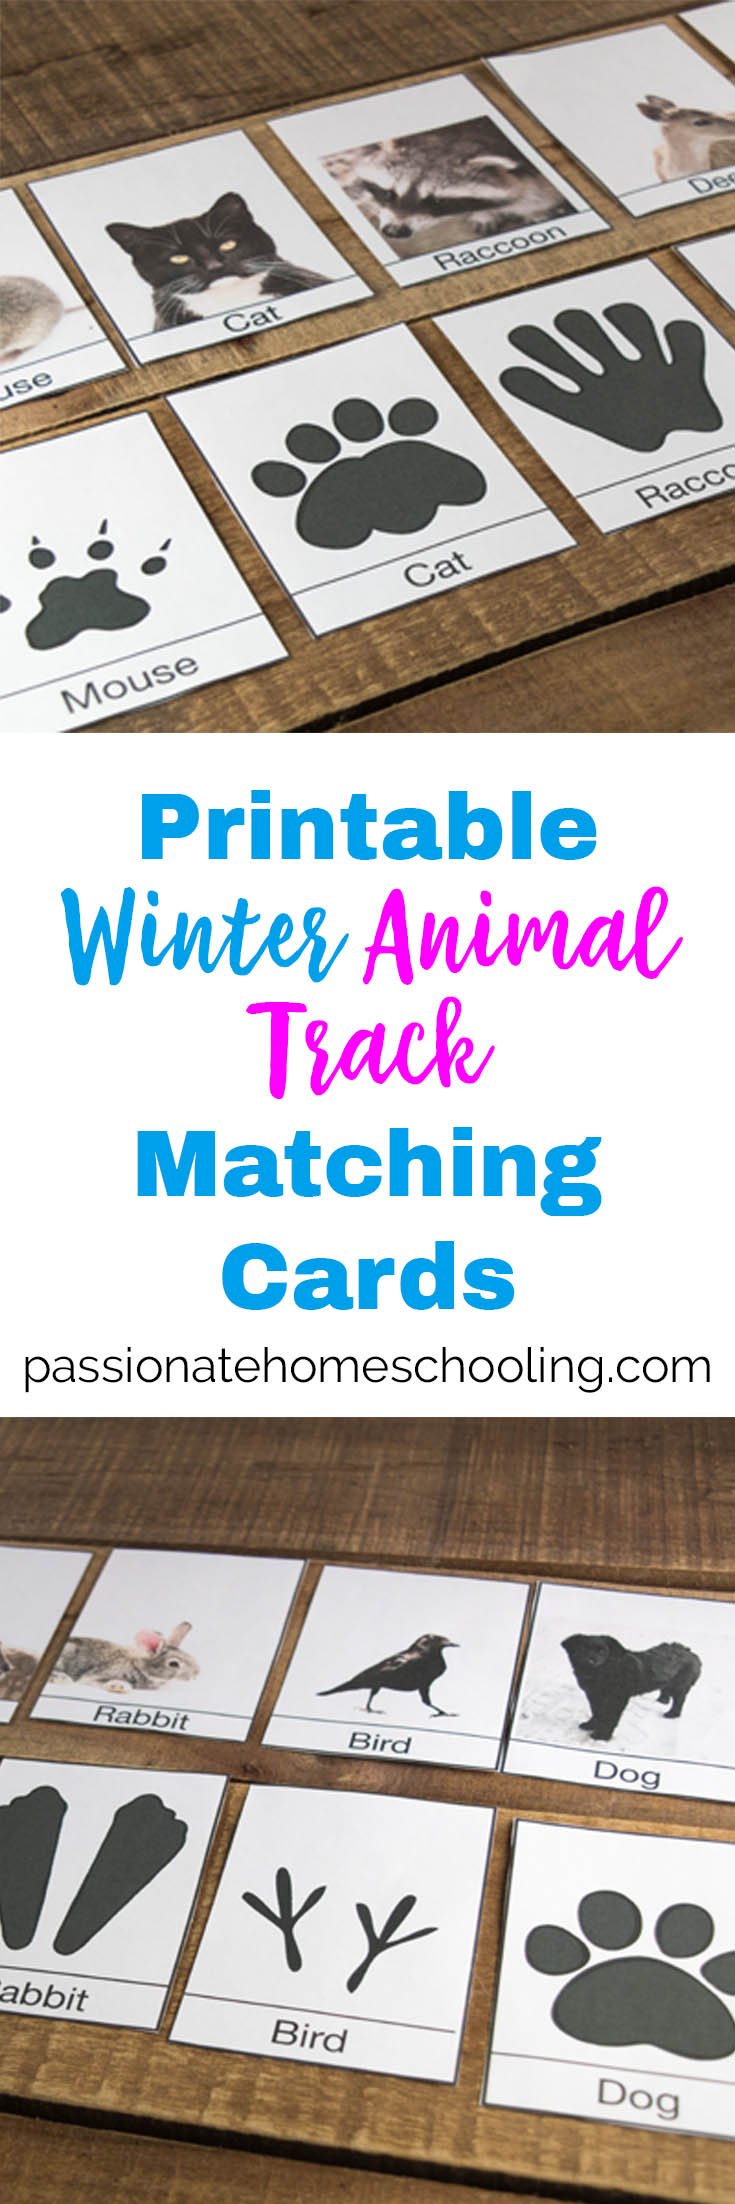 """I love these free printable animal track cards, they are perfect for helping kids to identify animals around your home in the winter. A great animal matching game for preschool to 2nd grade. #freeprintables #homeschool #preschool #naturestudy #unitstudy"""""""